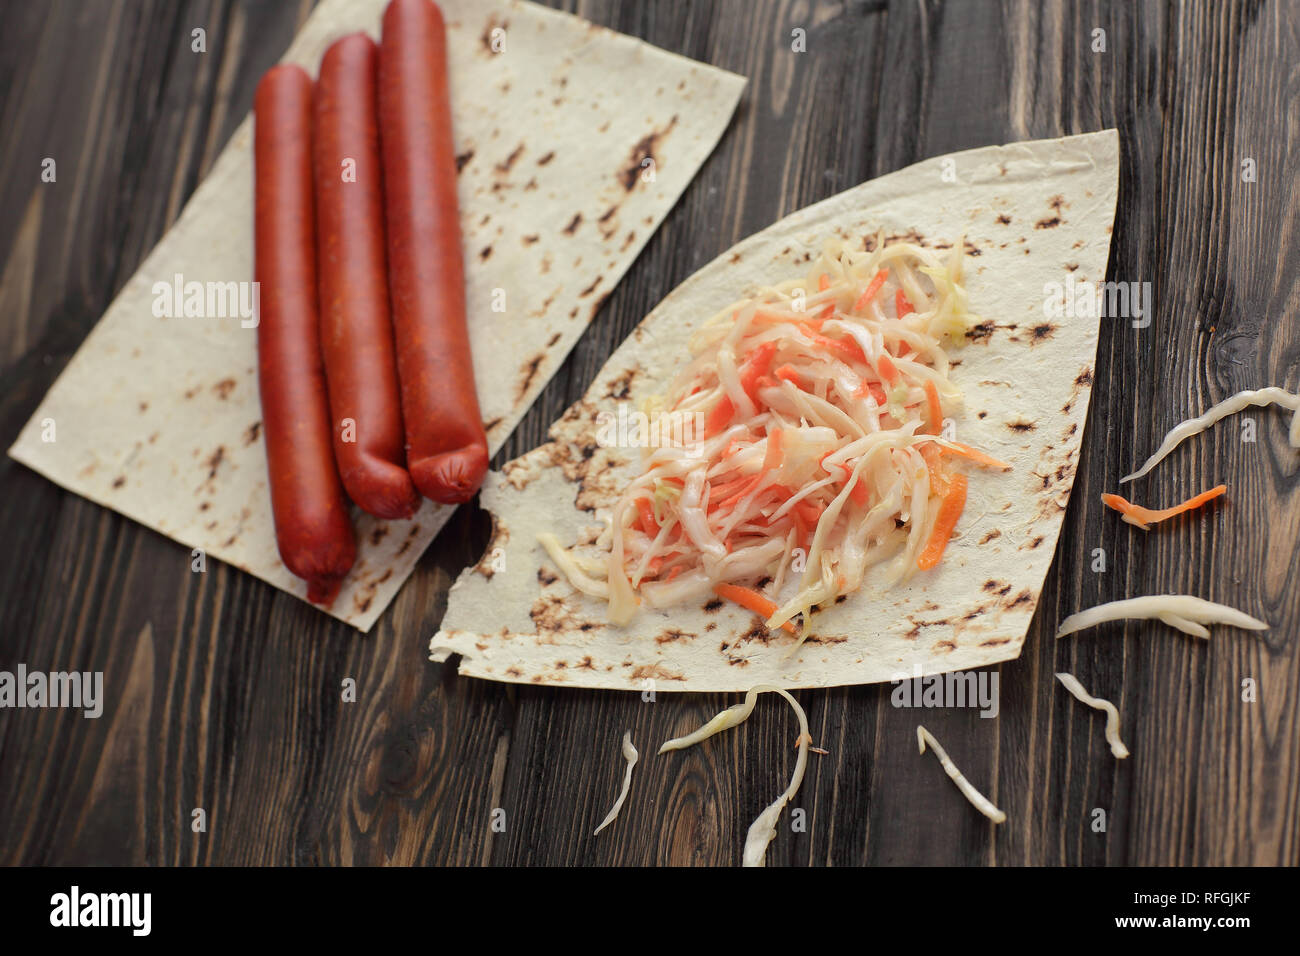 homemade sausage, pita bread and pickled cabbage for making Shawarma - Stock Image